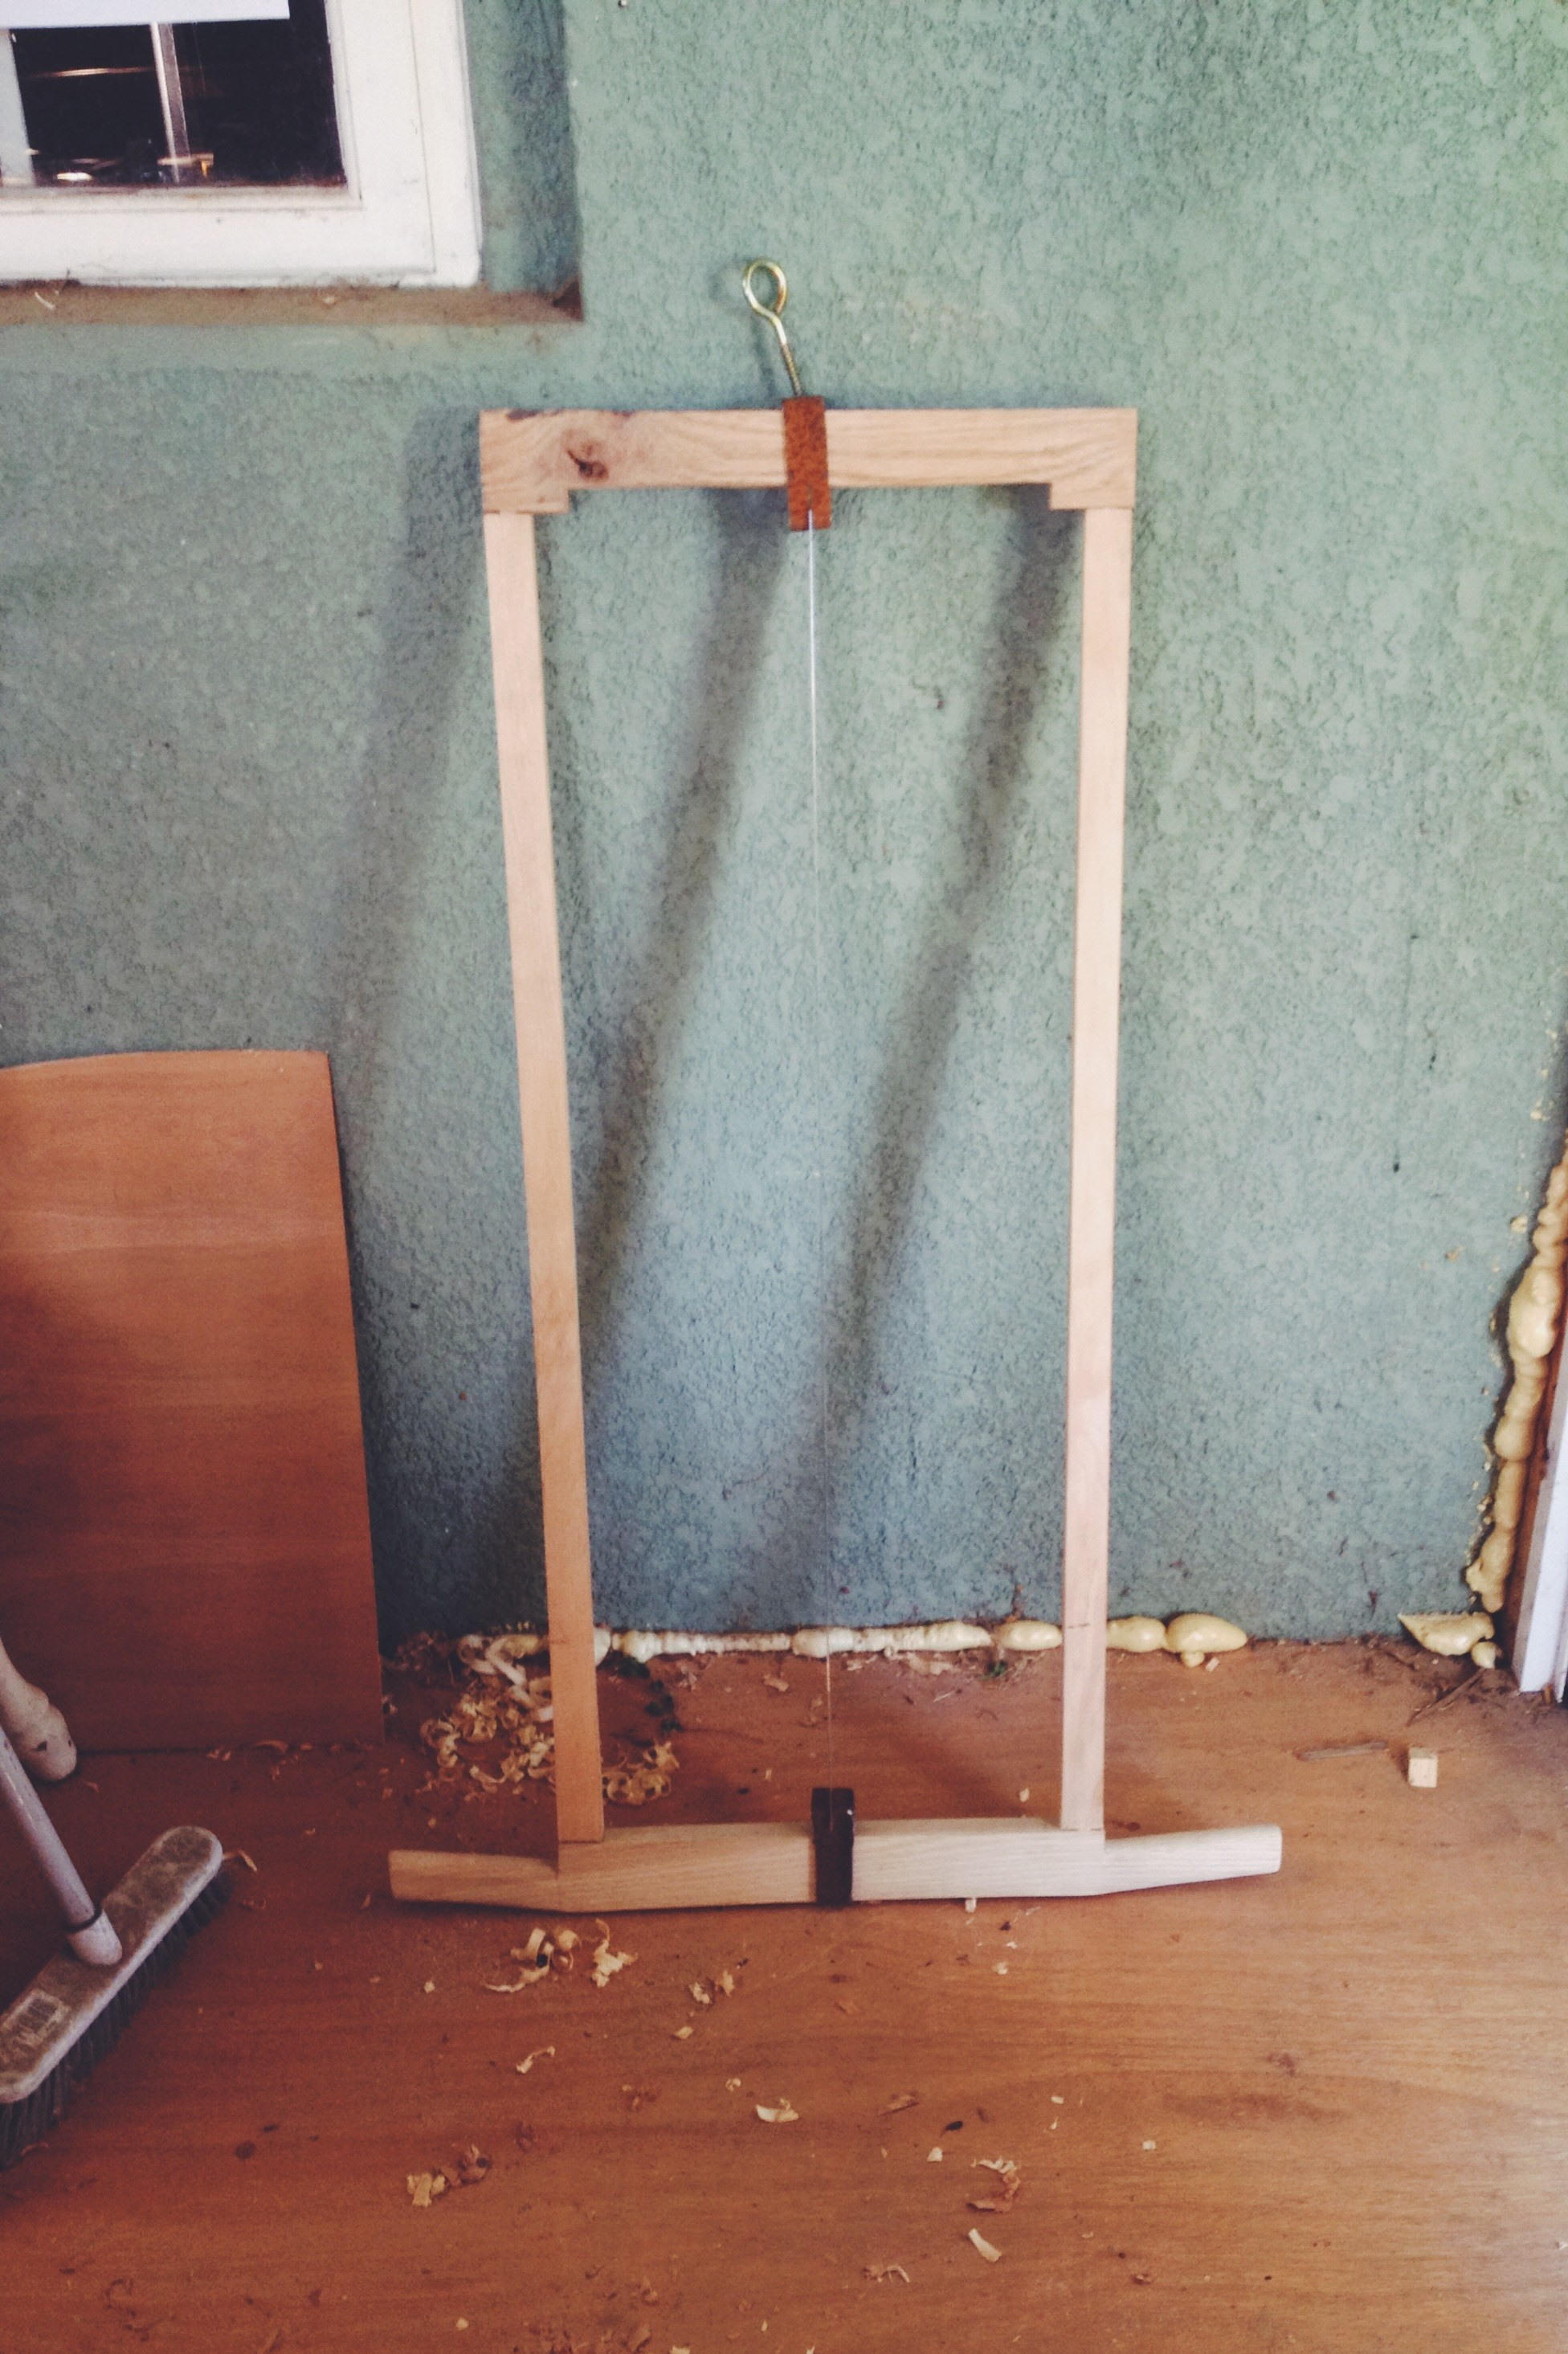 A Frame Saw in South Africa